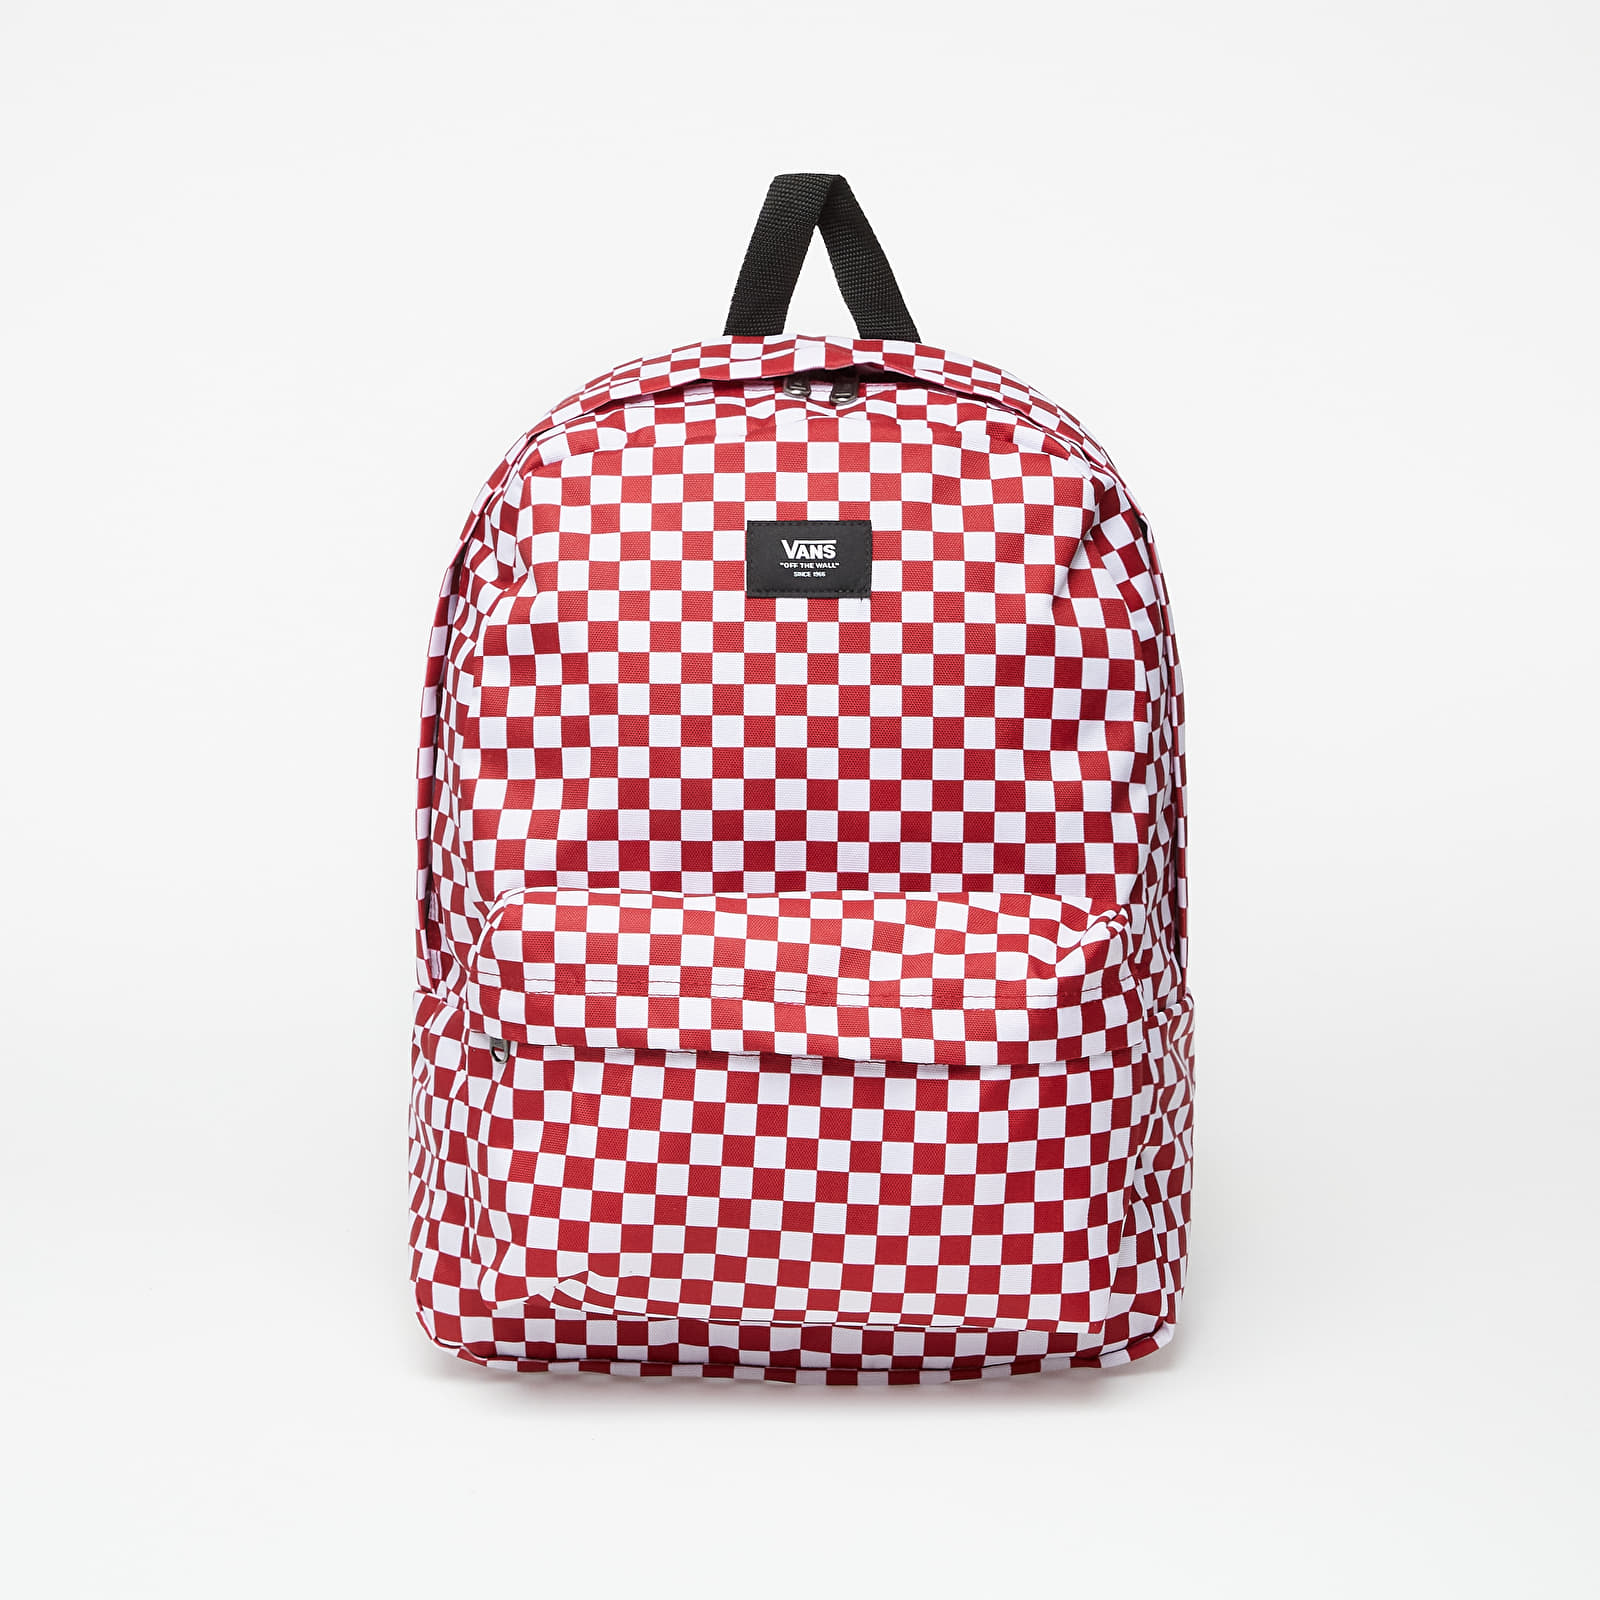 Batohy a tašky Vans Old Skool III Backpack Chili Pepper Ch